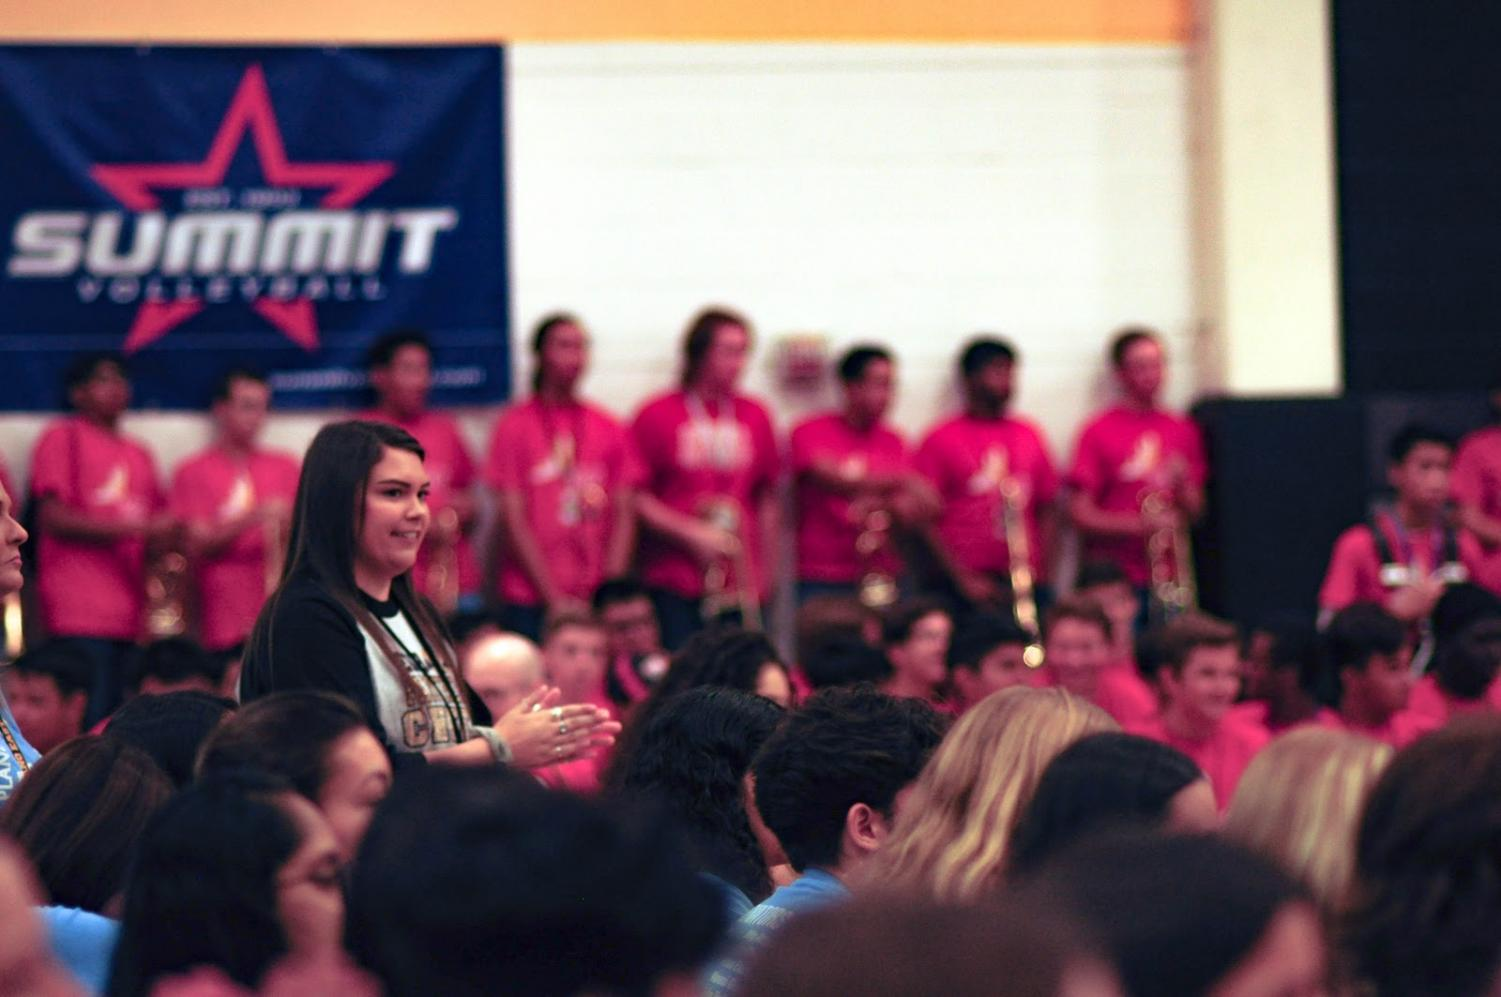 Proud Coach: Rose smiles on Sept. 13 as she watches her new cheer team perform at the pep rally. This was their first performance of the year, so she felt excited to see her cheerleaders show the school what they're capable of.